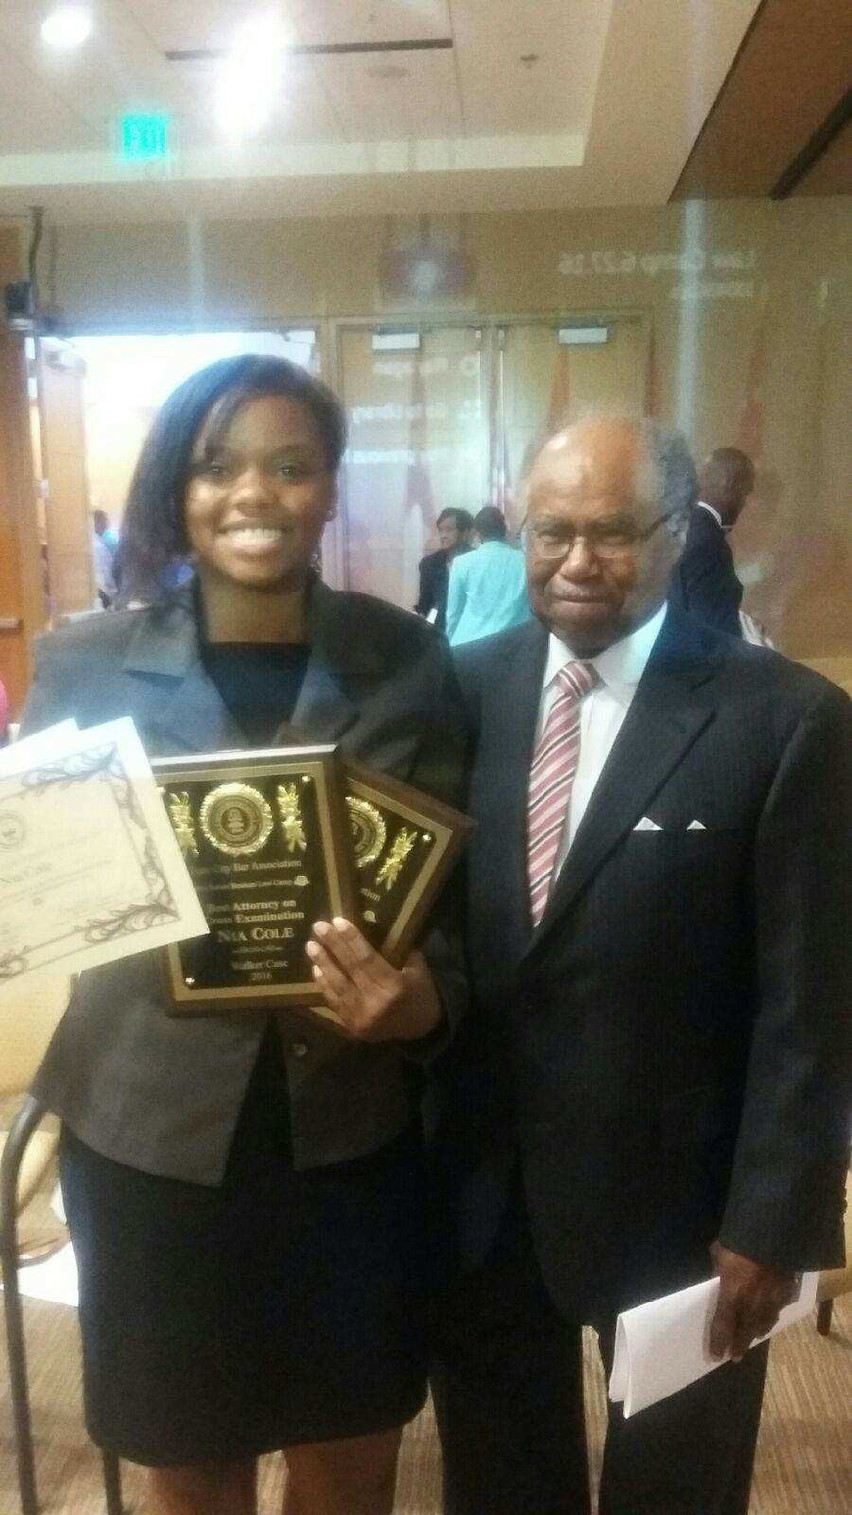 The African American Juvenile Justice Project Salutes NIA COLE Winner of the GCBA's Supreme Cour